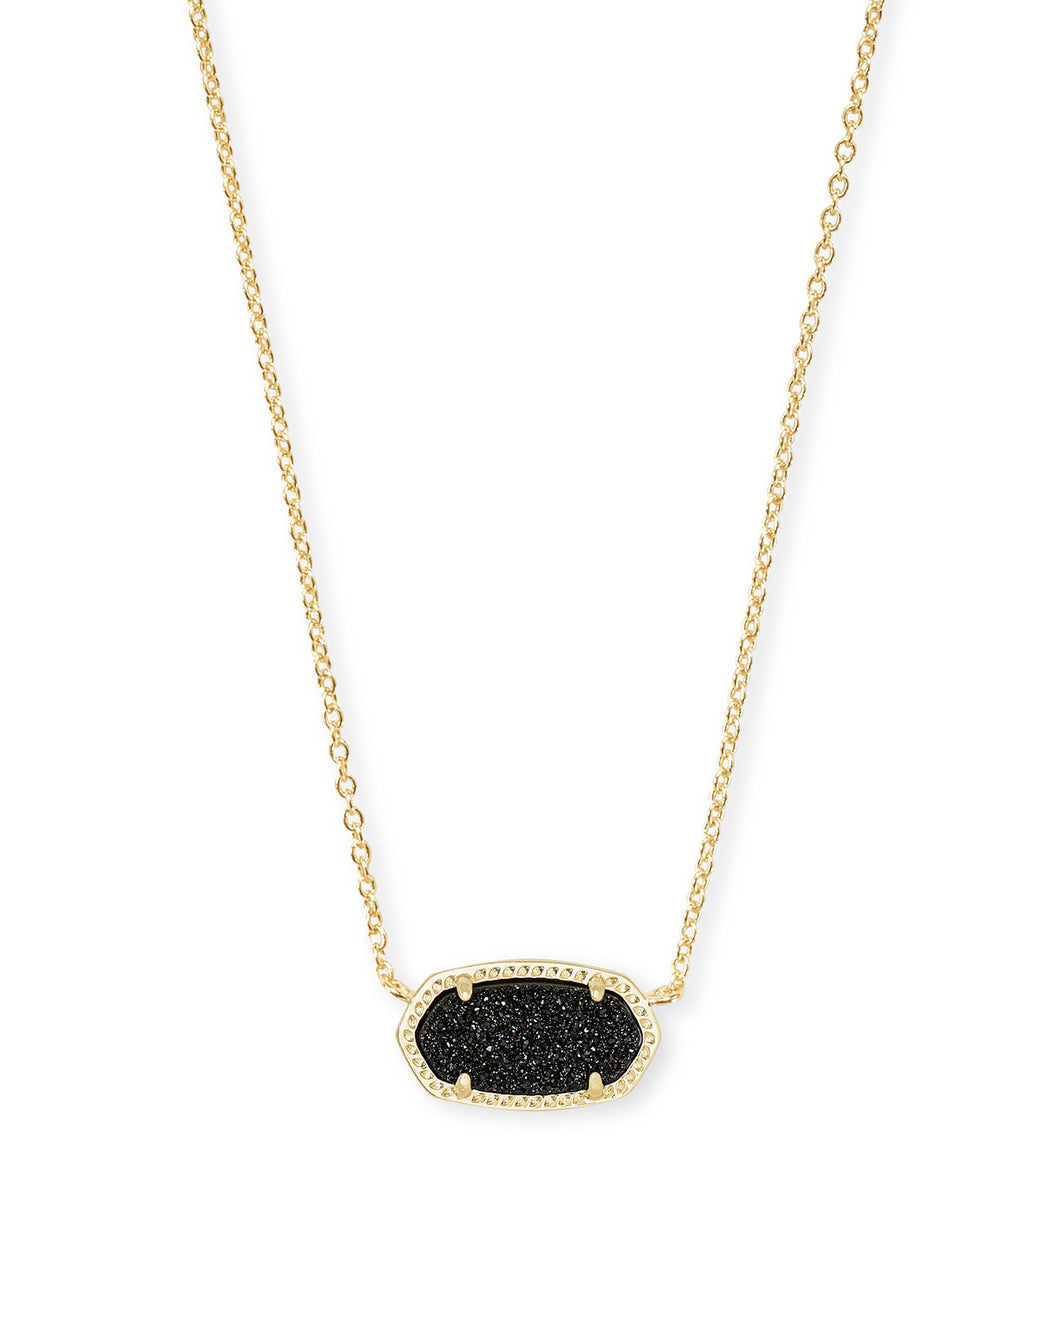 Kendra Scott Elisa Gold Pendant in Black Drusy